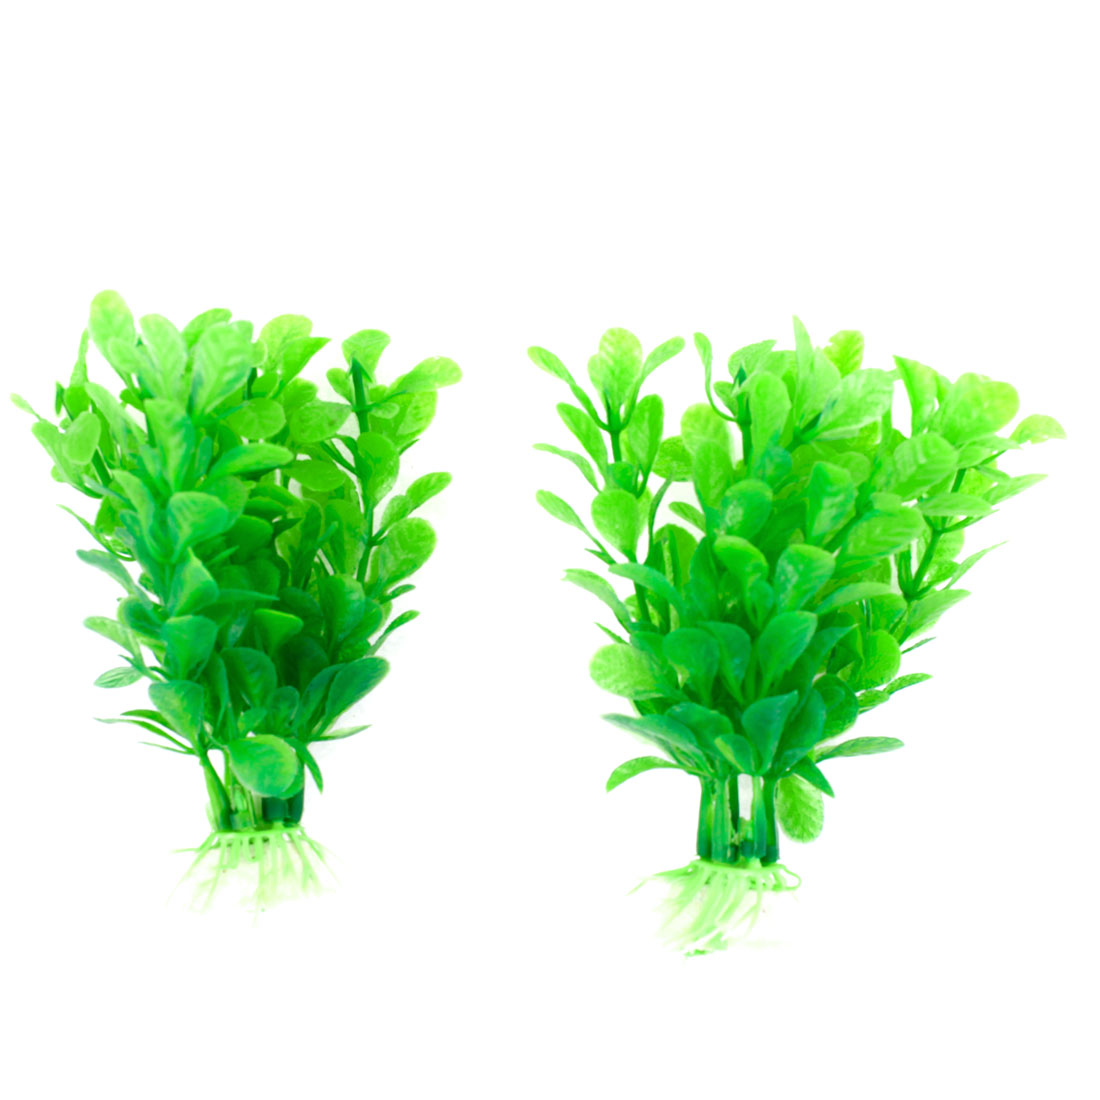 2 Pcs Aquarium Green Simulation Plastic Aquatic Grass Ornament